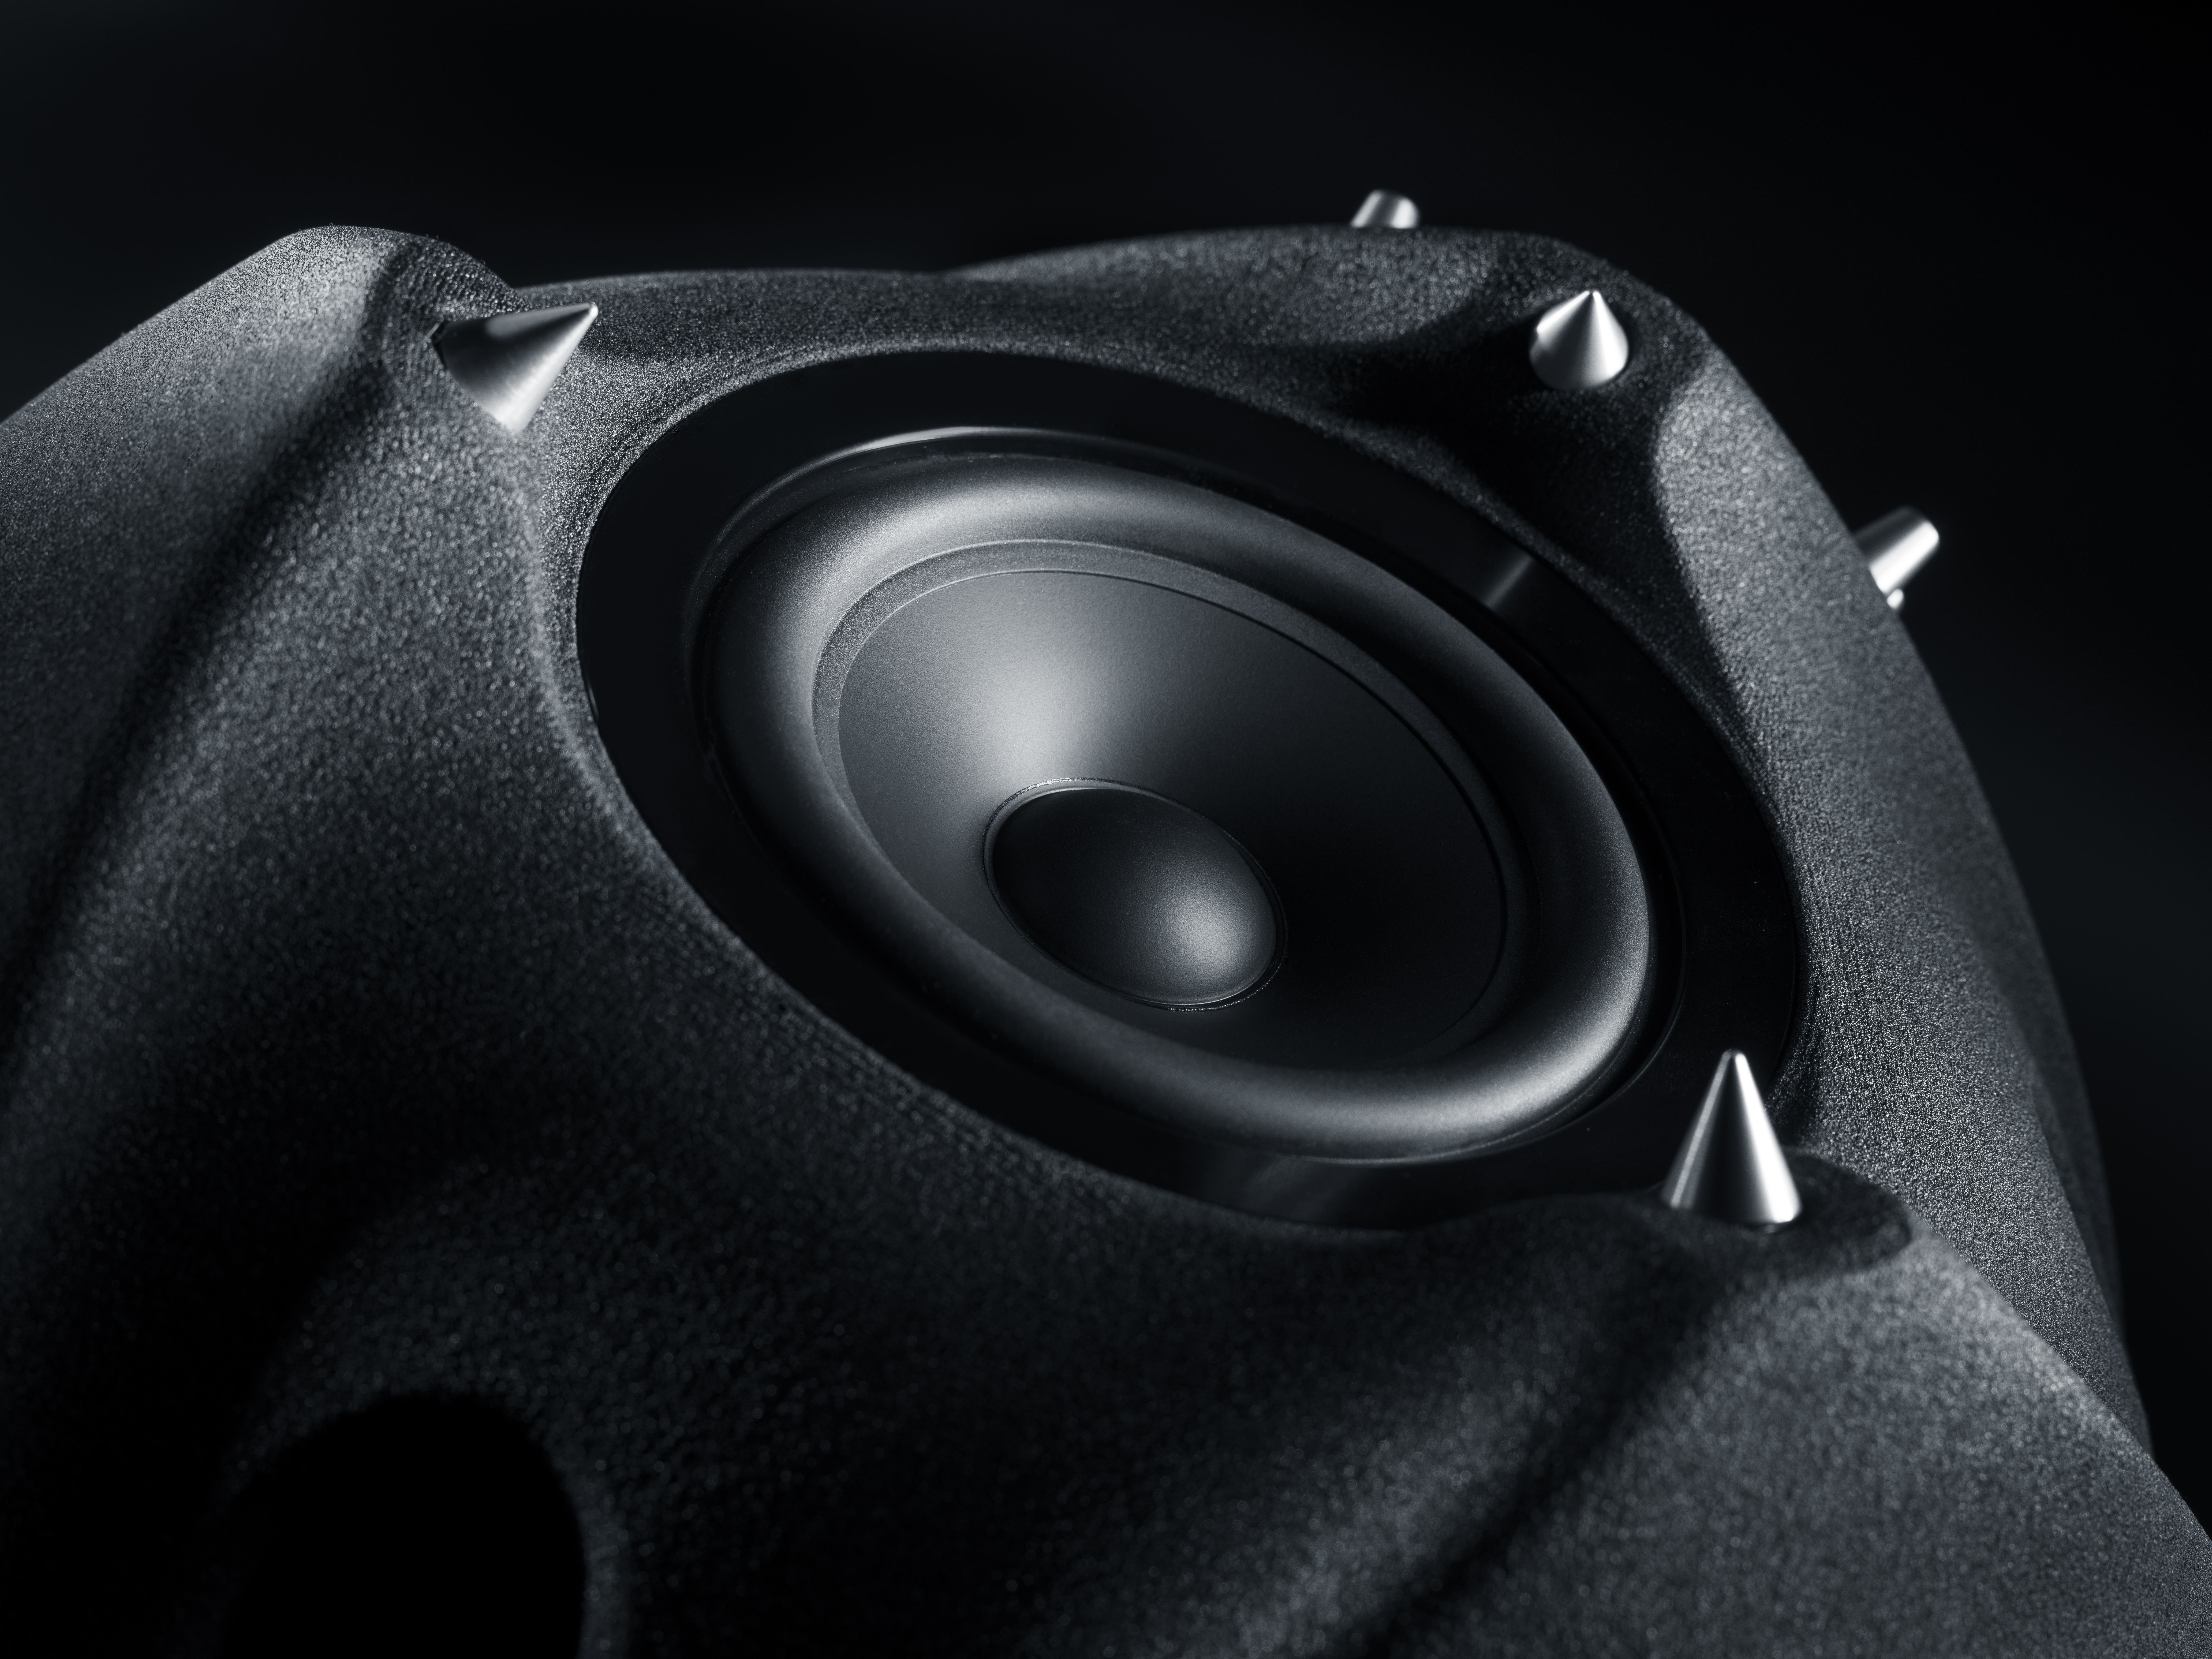 The 3D sand printed sub-woofer, part of the Ionic Sound System. Image via DEEPTIME.